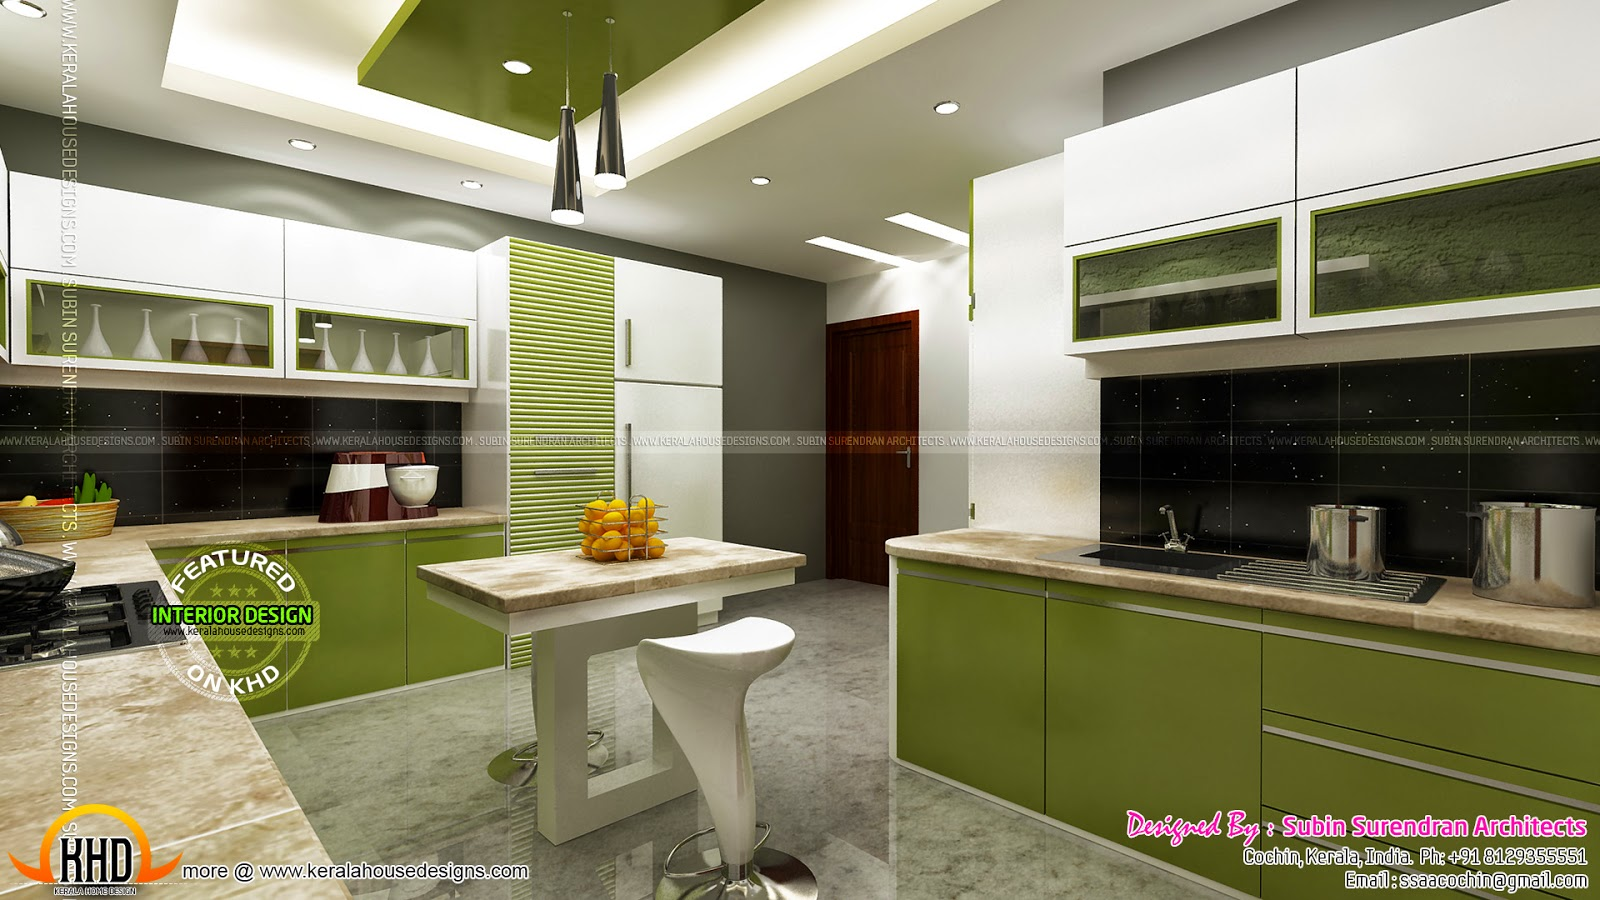 Luxury interior designs in kerala kerala home design and for Kerala interior designs